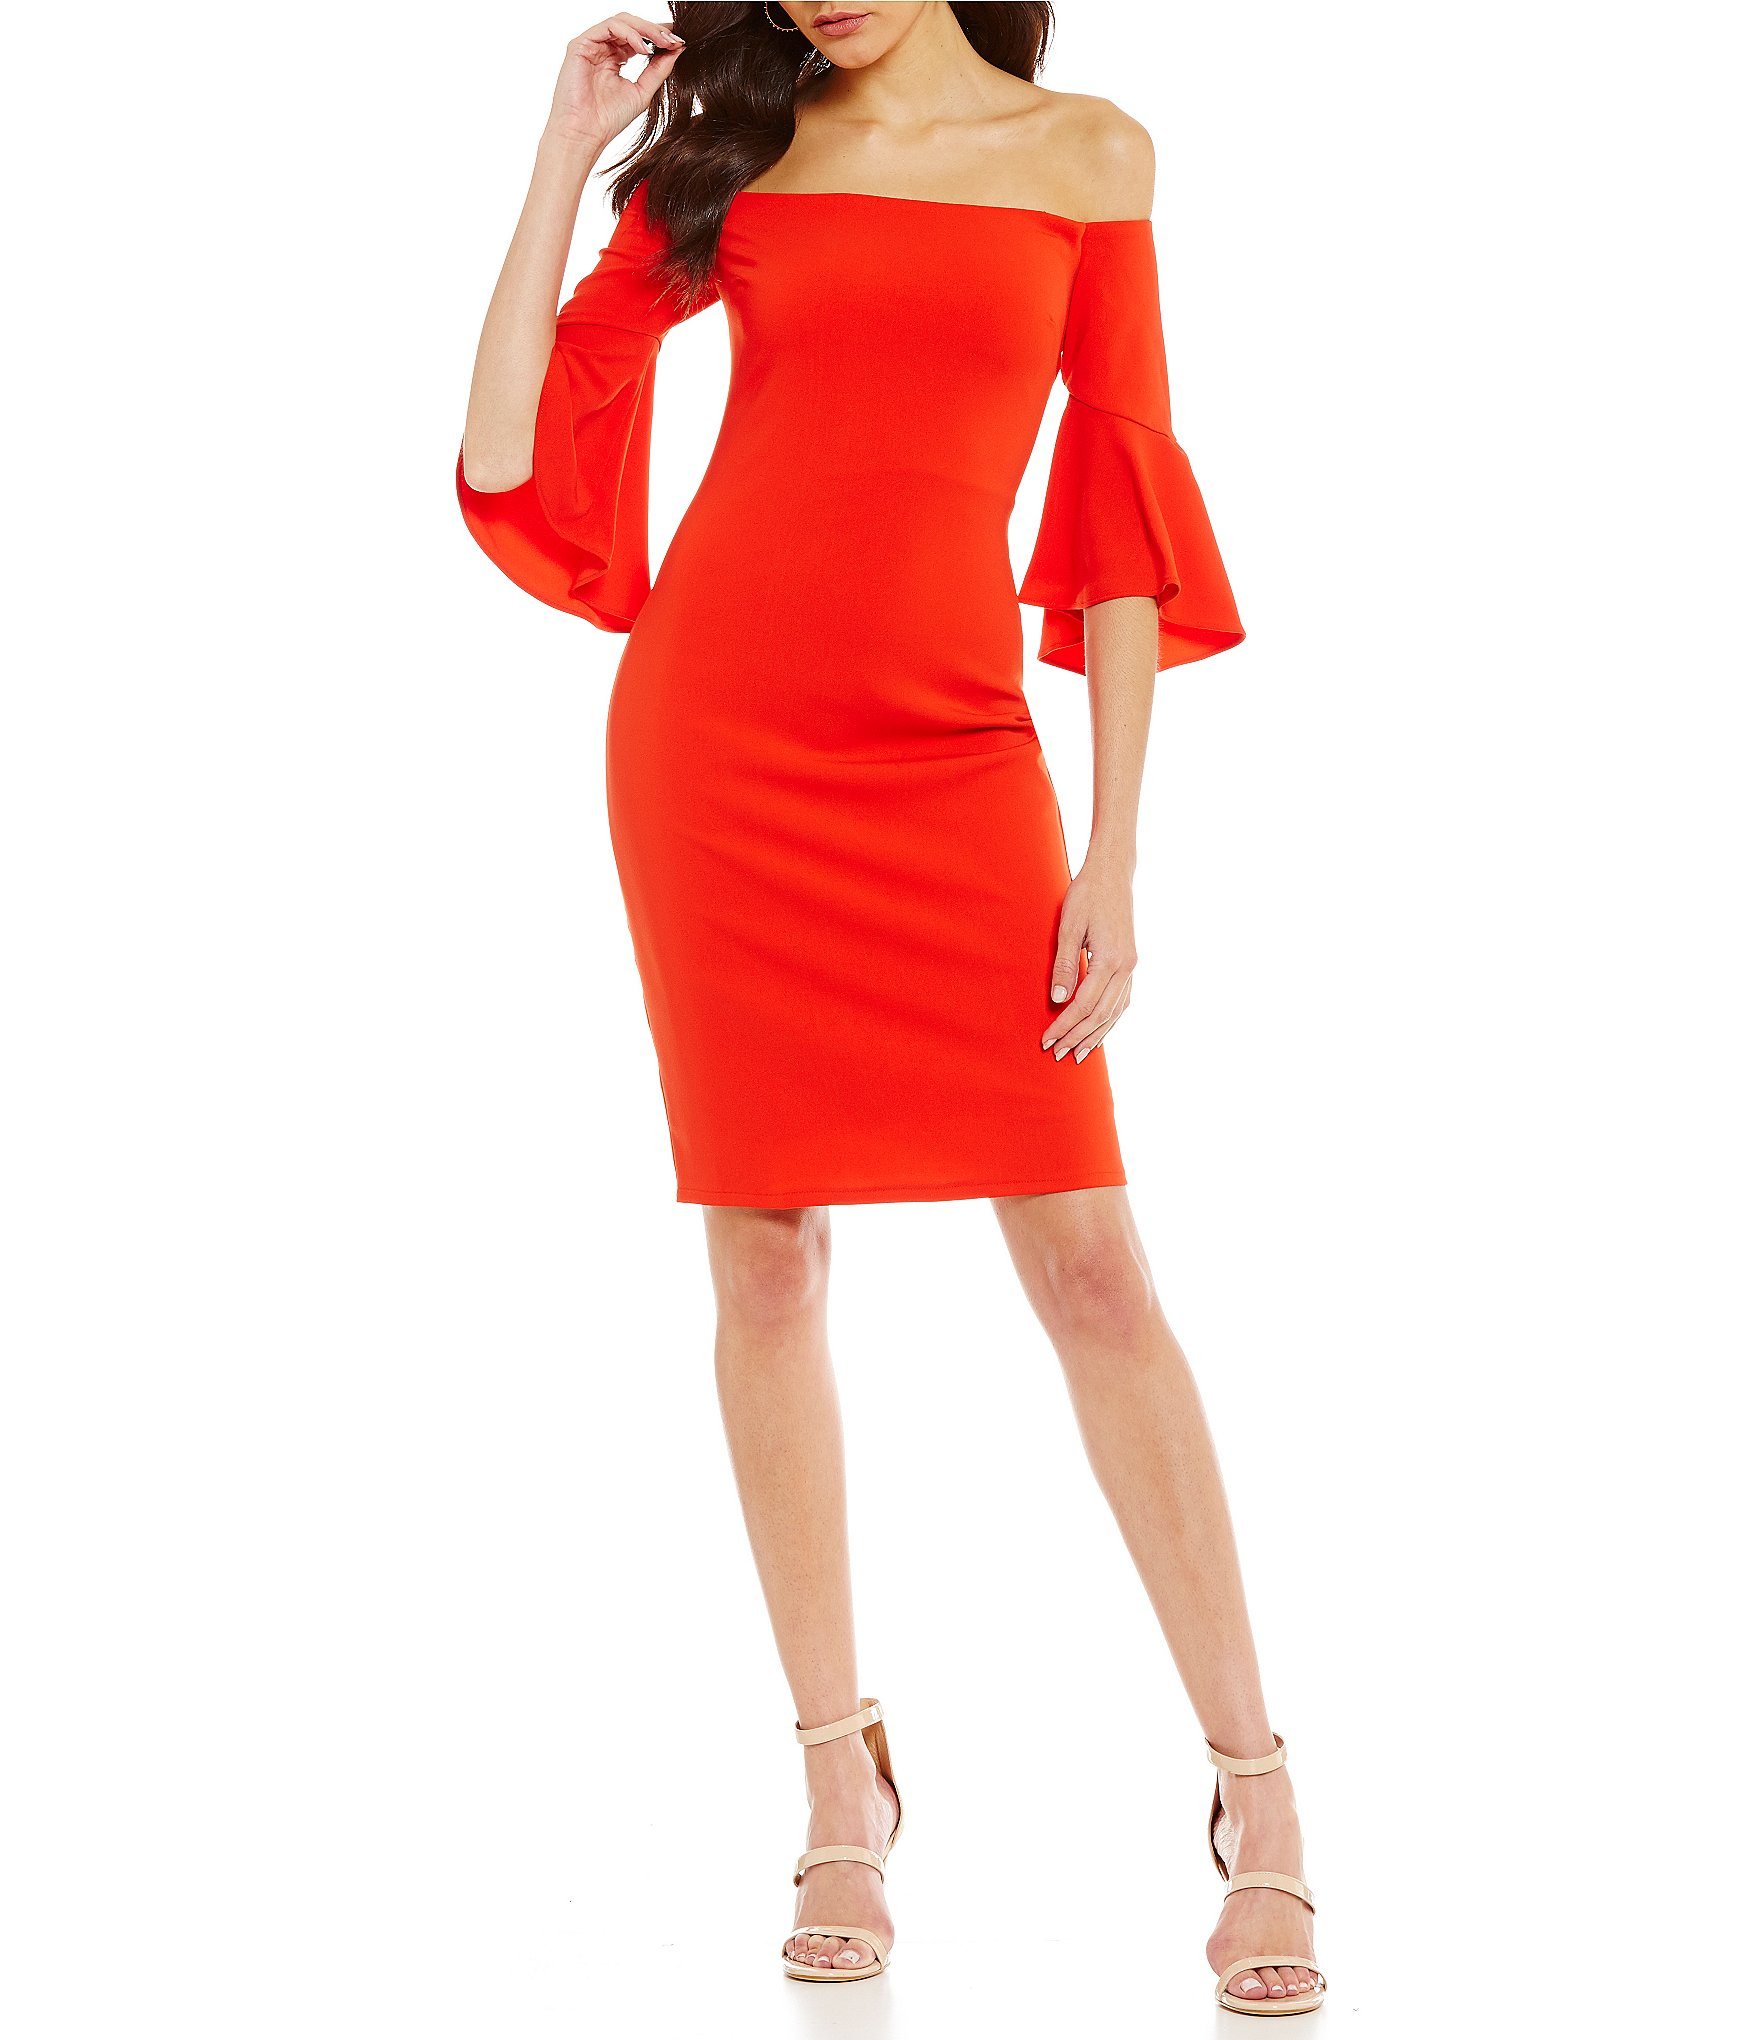 red cocktail dress red womenu0027s cocktail u0026 party dresses | dillards ZPMMOAD